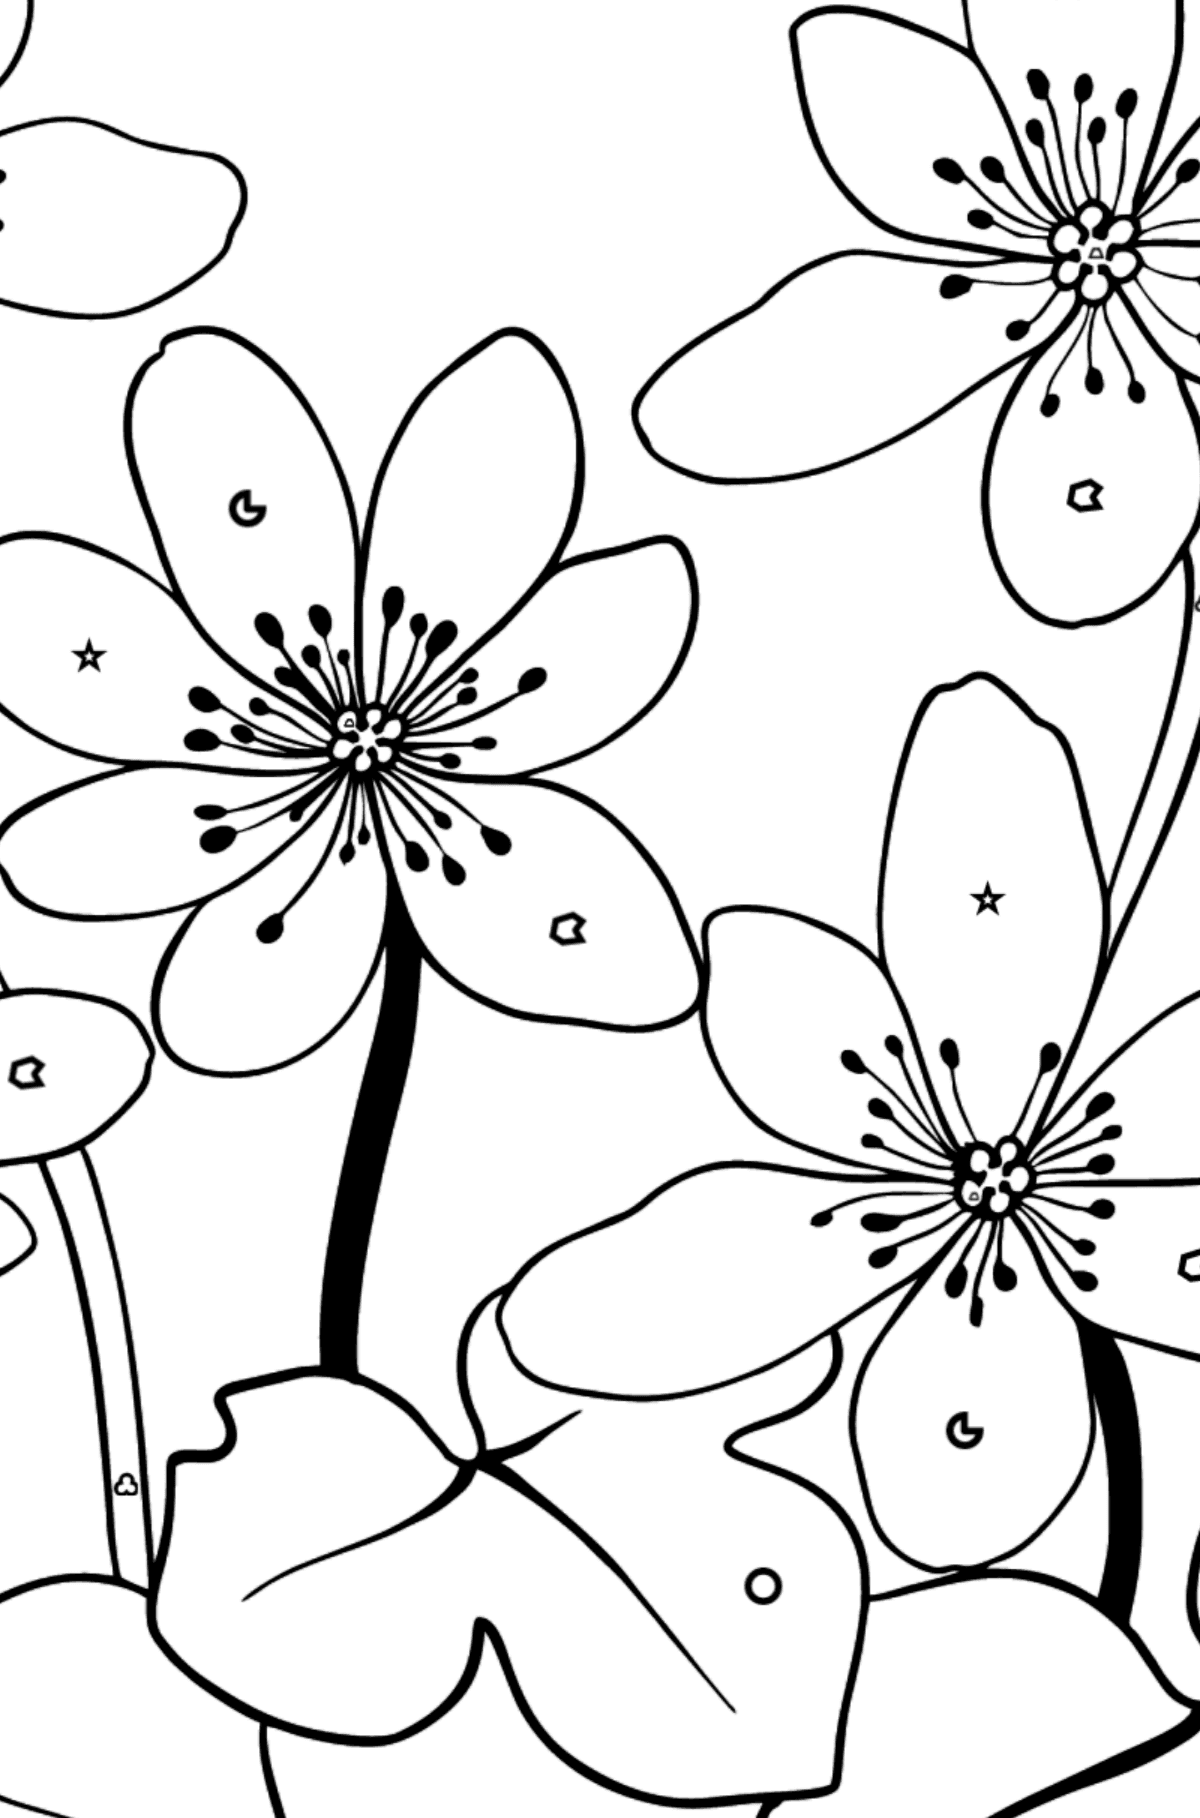 Flower Coloring Page - Hepatica - Coloring by Geometric Shapes for Kids